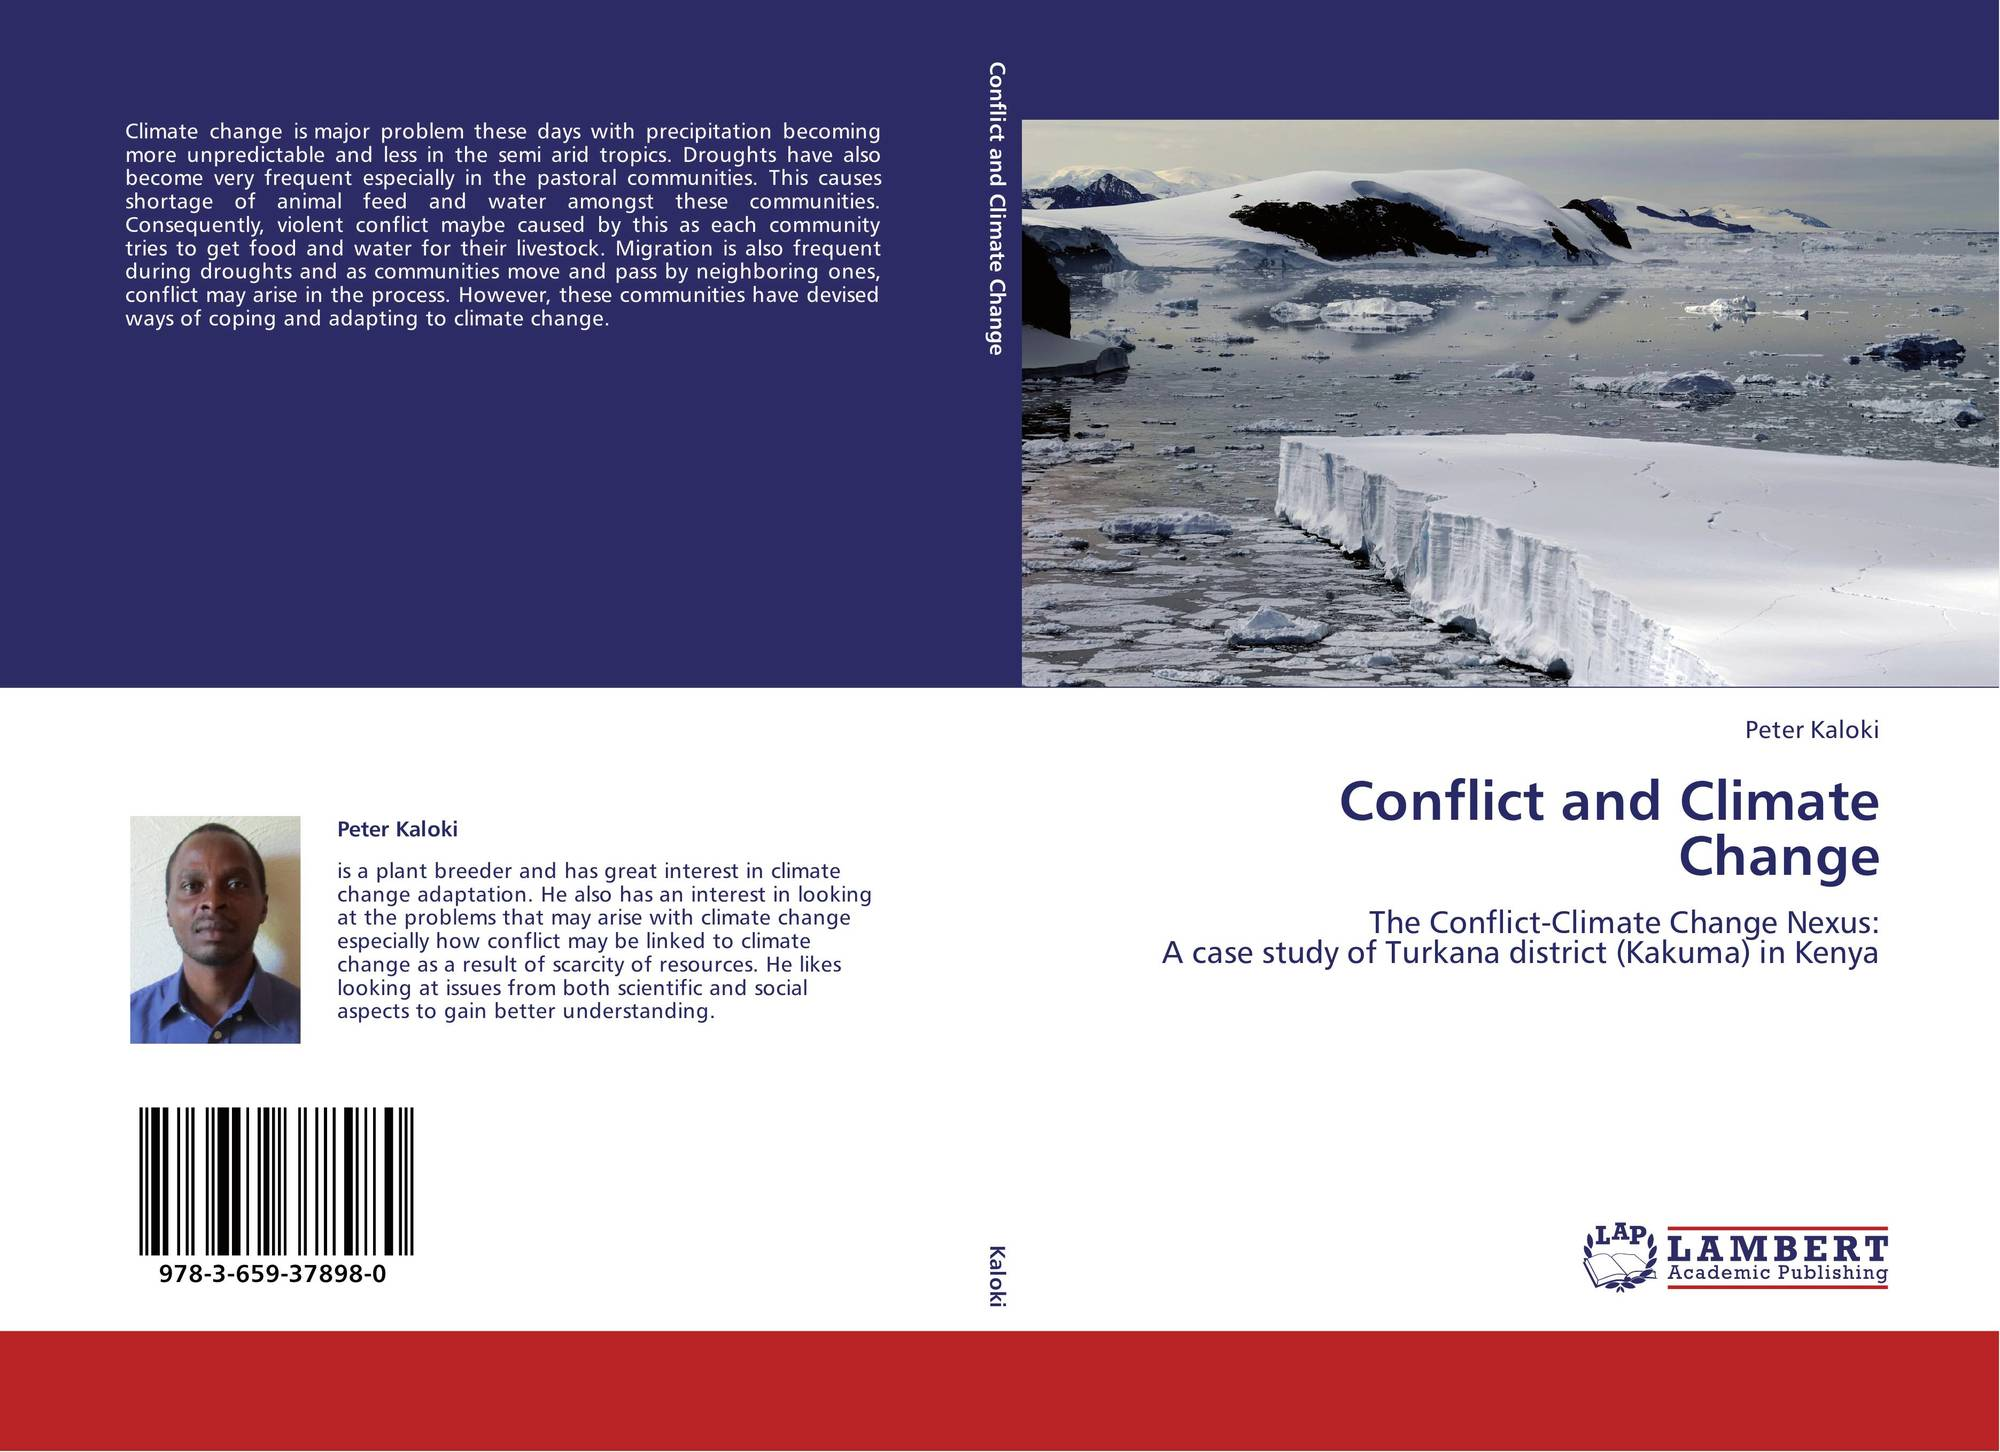 conflict and social change a case Information page research in social movements, conflicts and change publishes top-level peer-reviewed research that has helped define and advance scholarship in social movements, conflict resolution, and social and political change for more than 40 years.